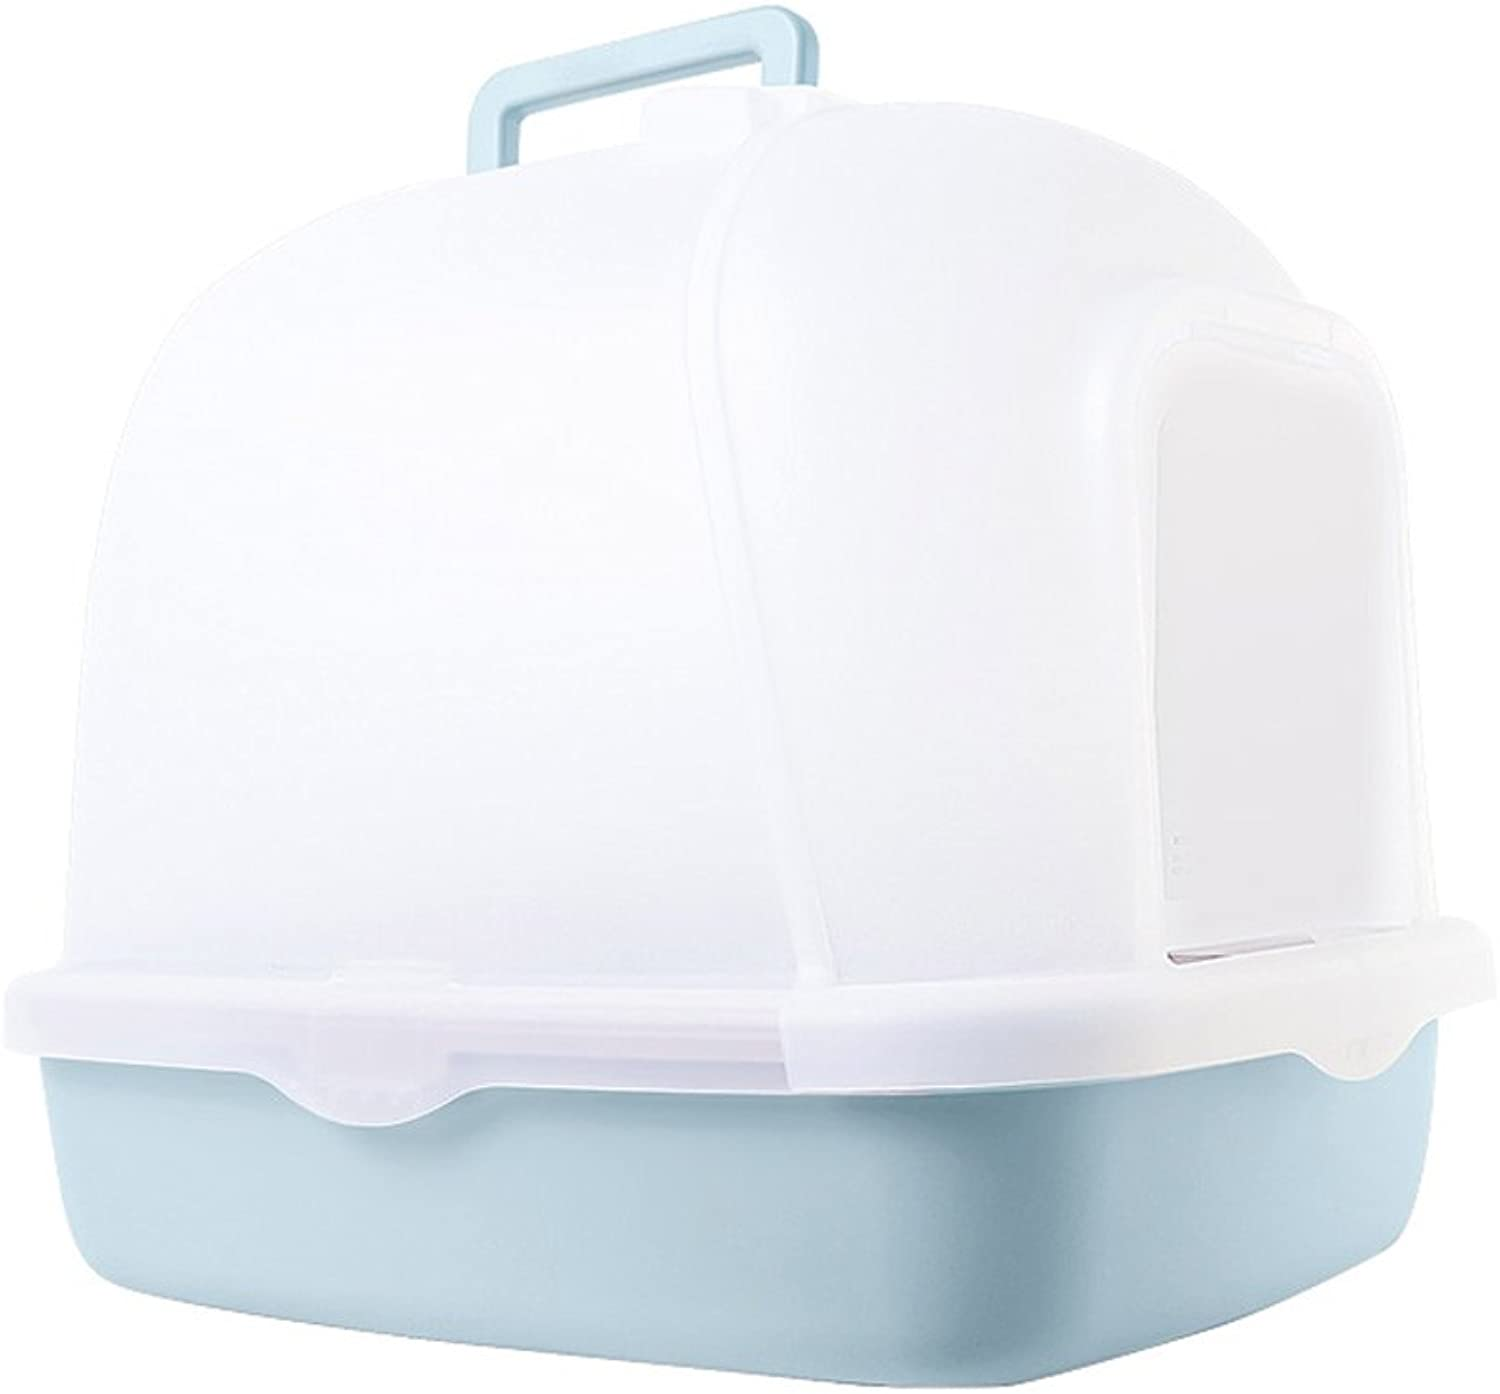 Cat Litter Box Large Fully Enclosed Litter Box Antisplashing Pets Cat Toilet Deodorant Cat Accessories 51x39x43.5cm Pet Toilet